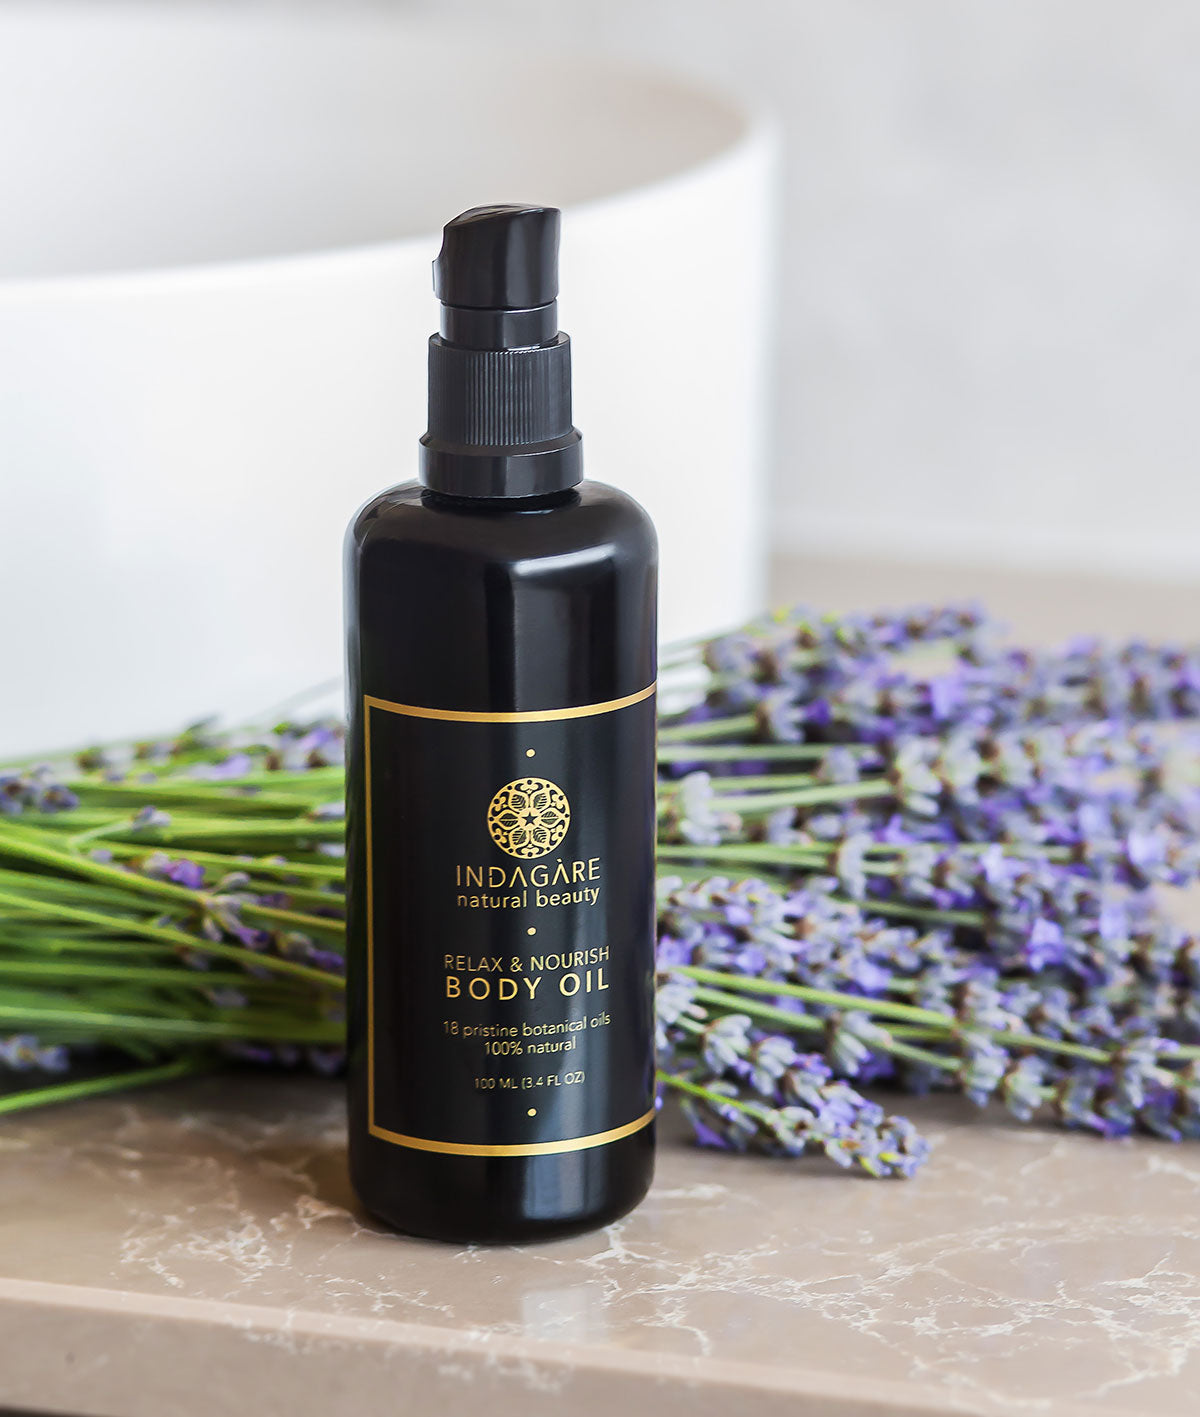 Indagare's Relax & Nourish Body Oil with Lavender